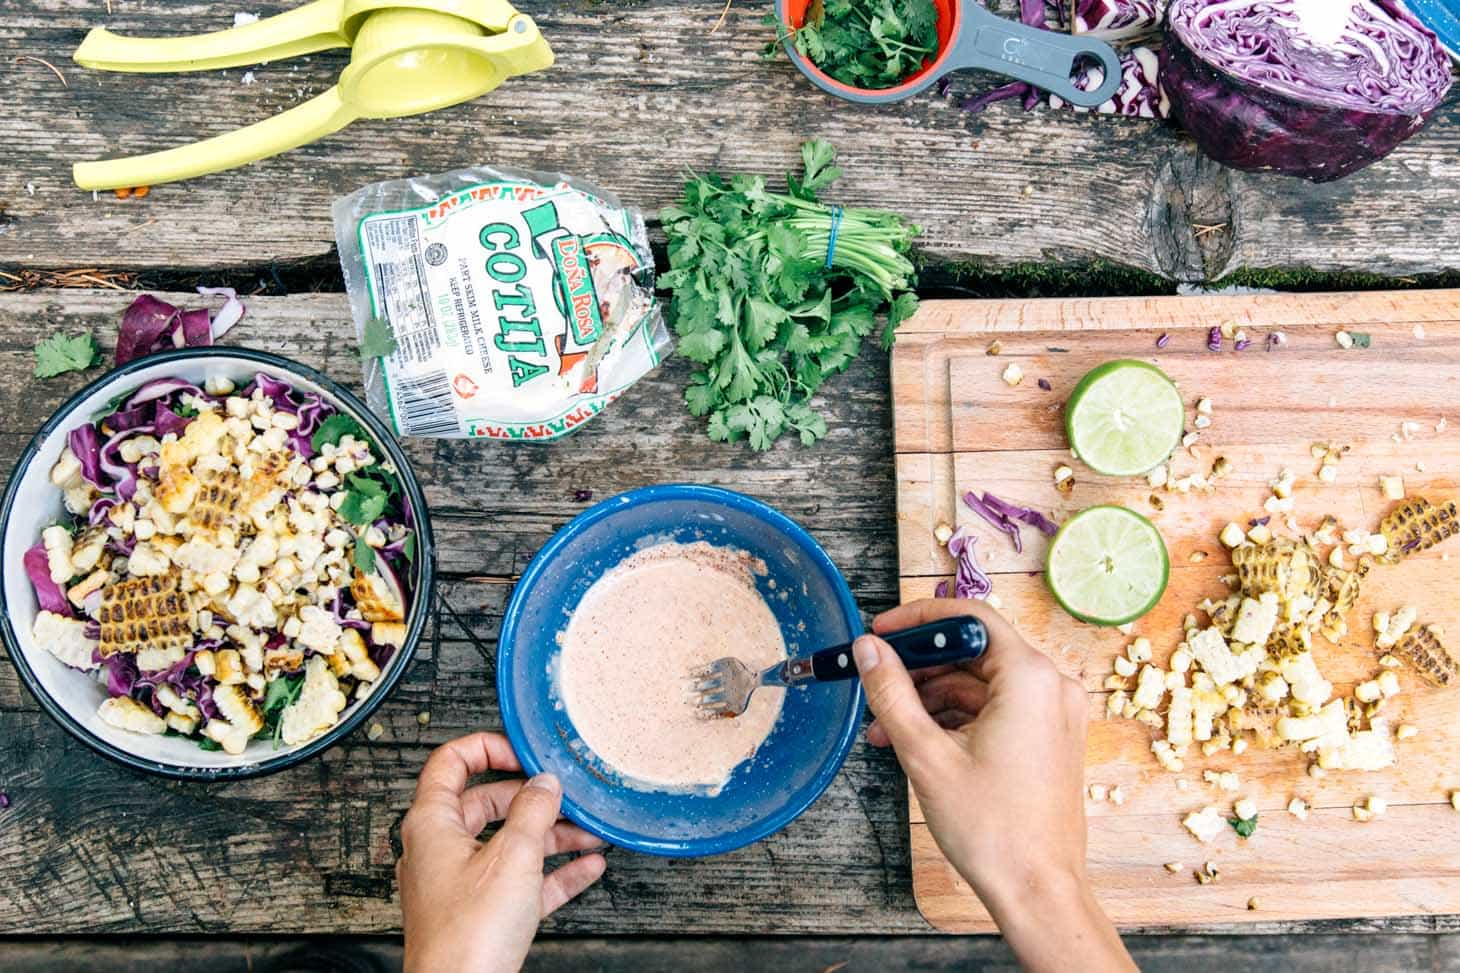 A fun take on Mexican street corn, this grilled esquites recipe (Mexican coleslaw) is a great side to serve with dinner while camping!